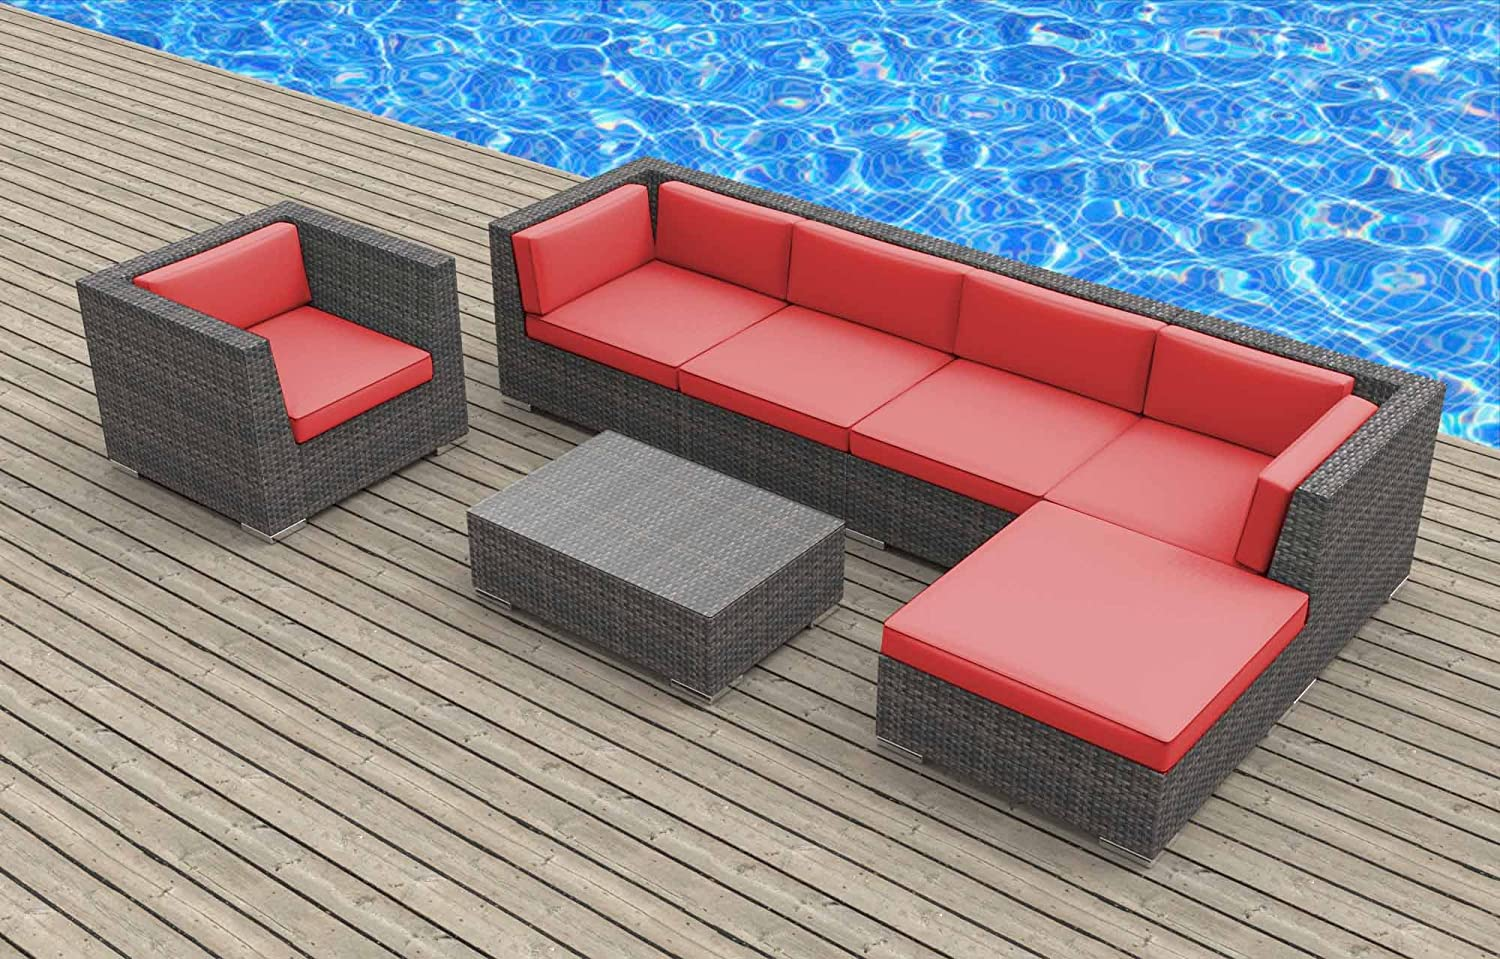 www.urbanfurnishing.net Urban Furnishing - LANAI 7pc Modern Outdoor Backyard Wicker Rattan Patio Furniture Sofa Sectional Couch Set - Coral Red at Sears.com